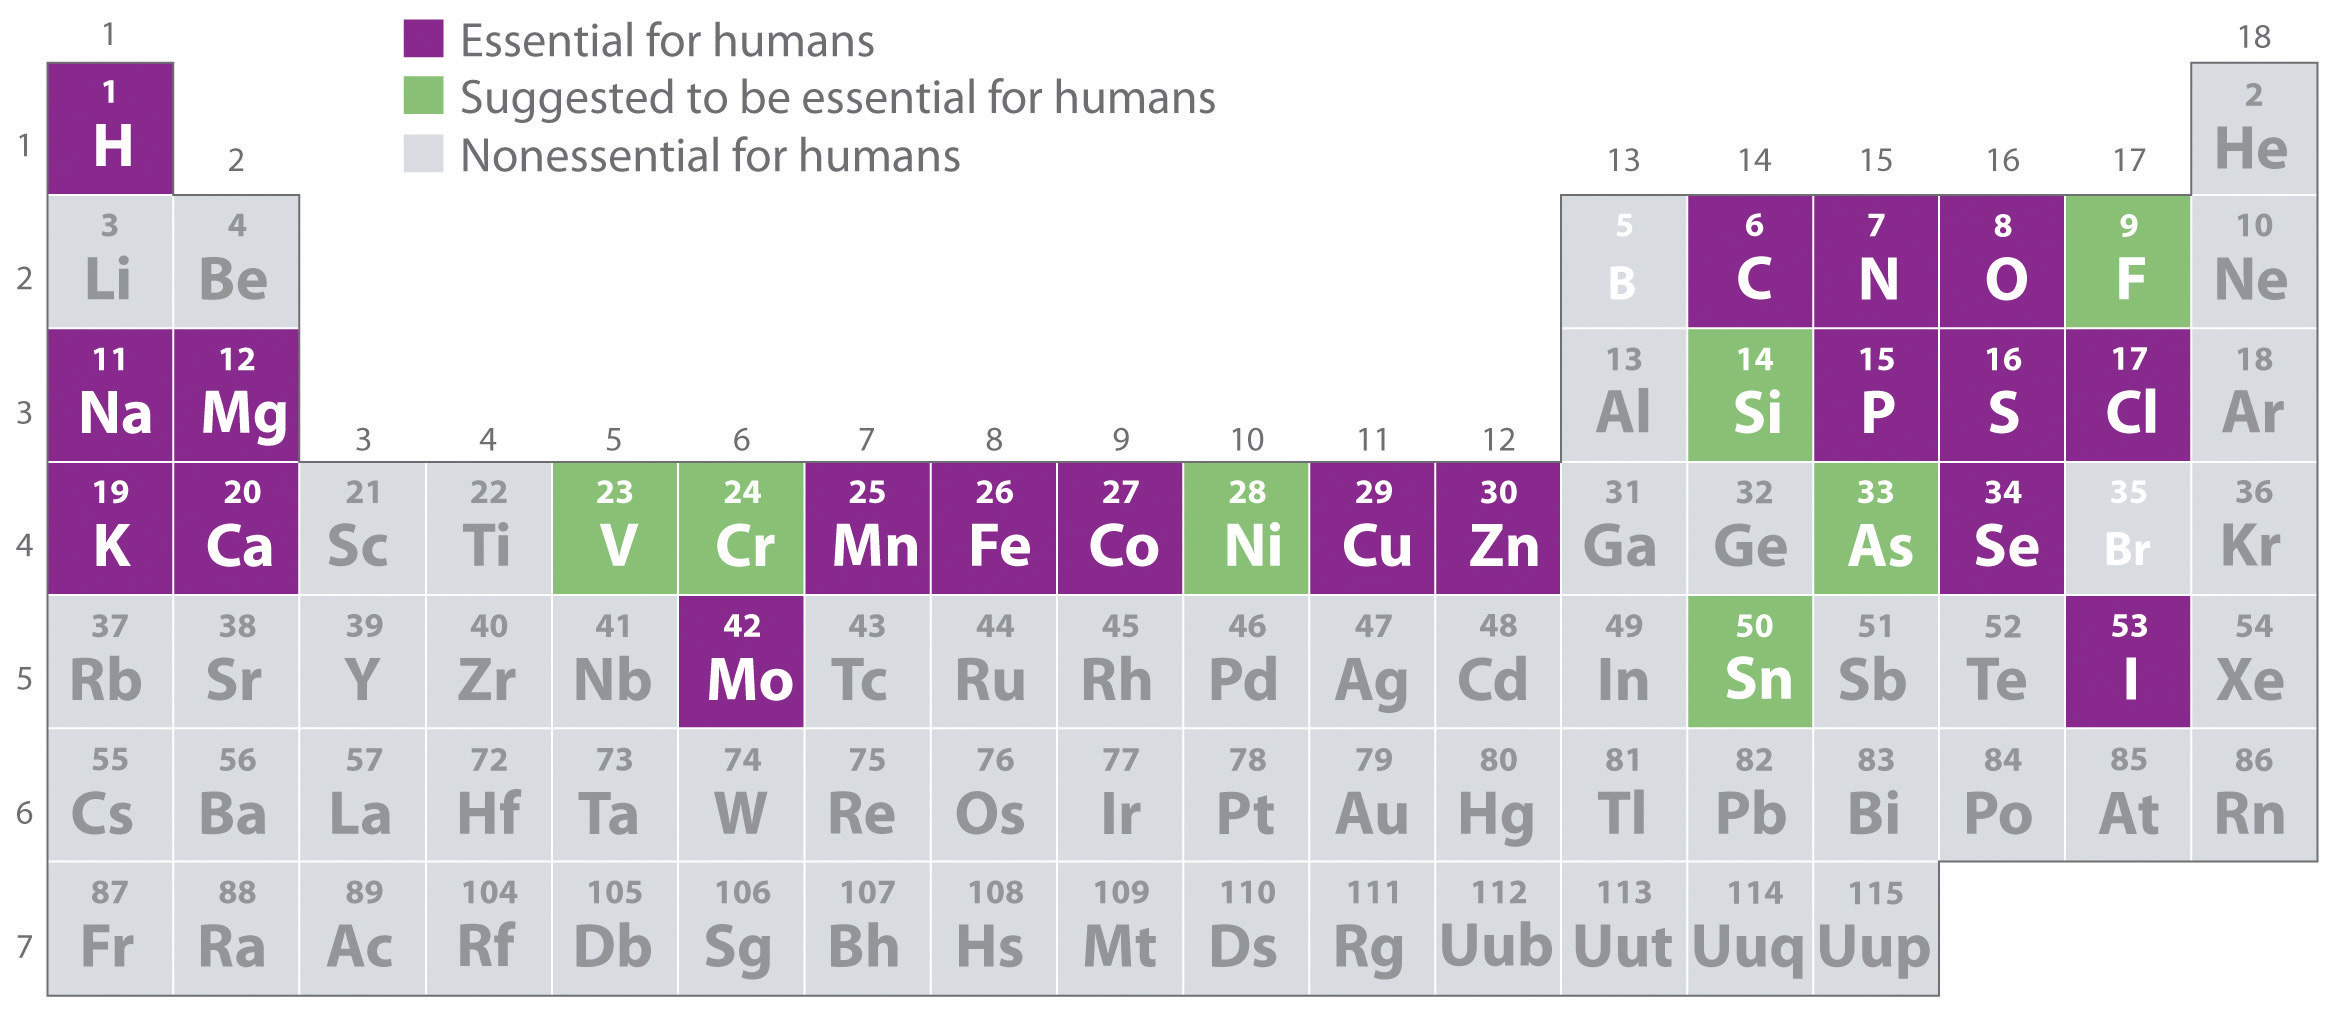 18 essential elements for life